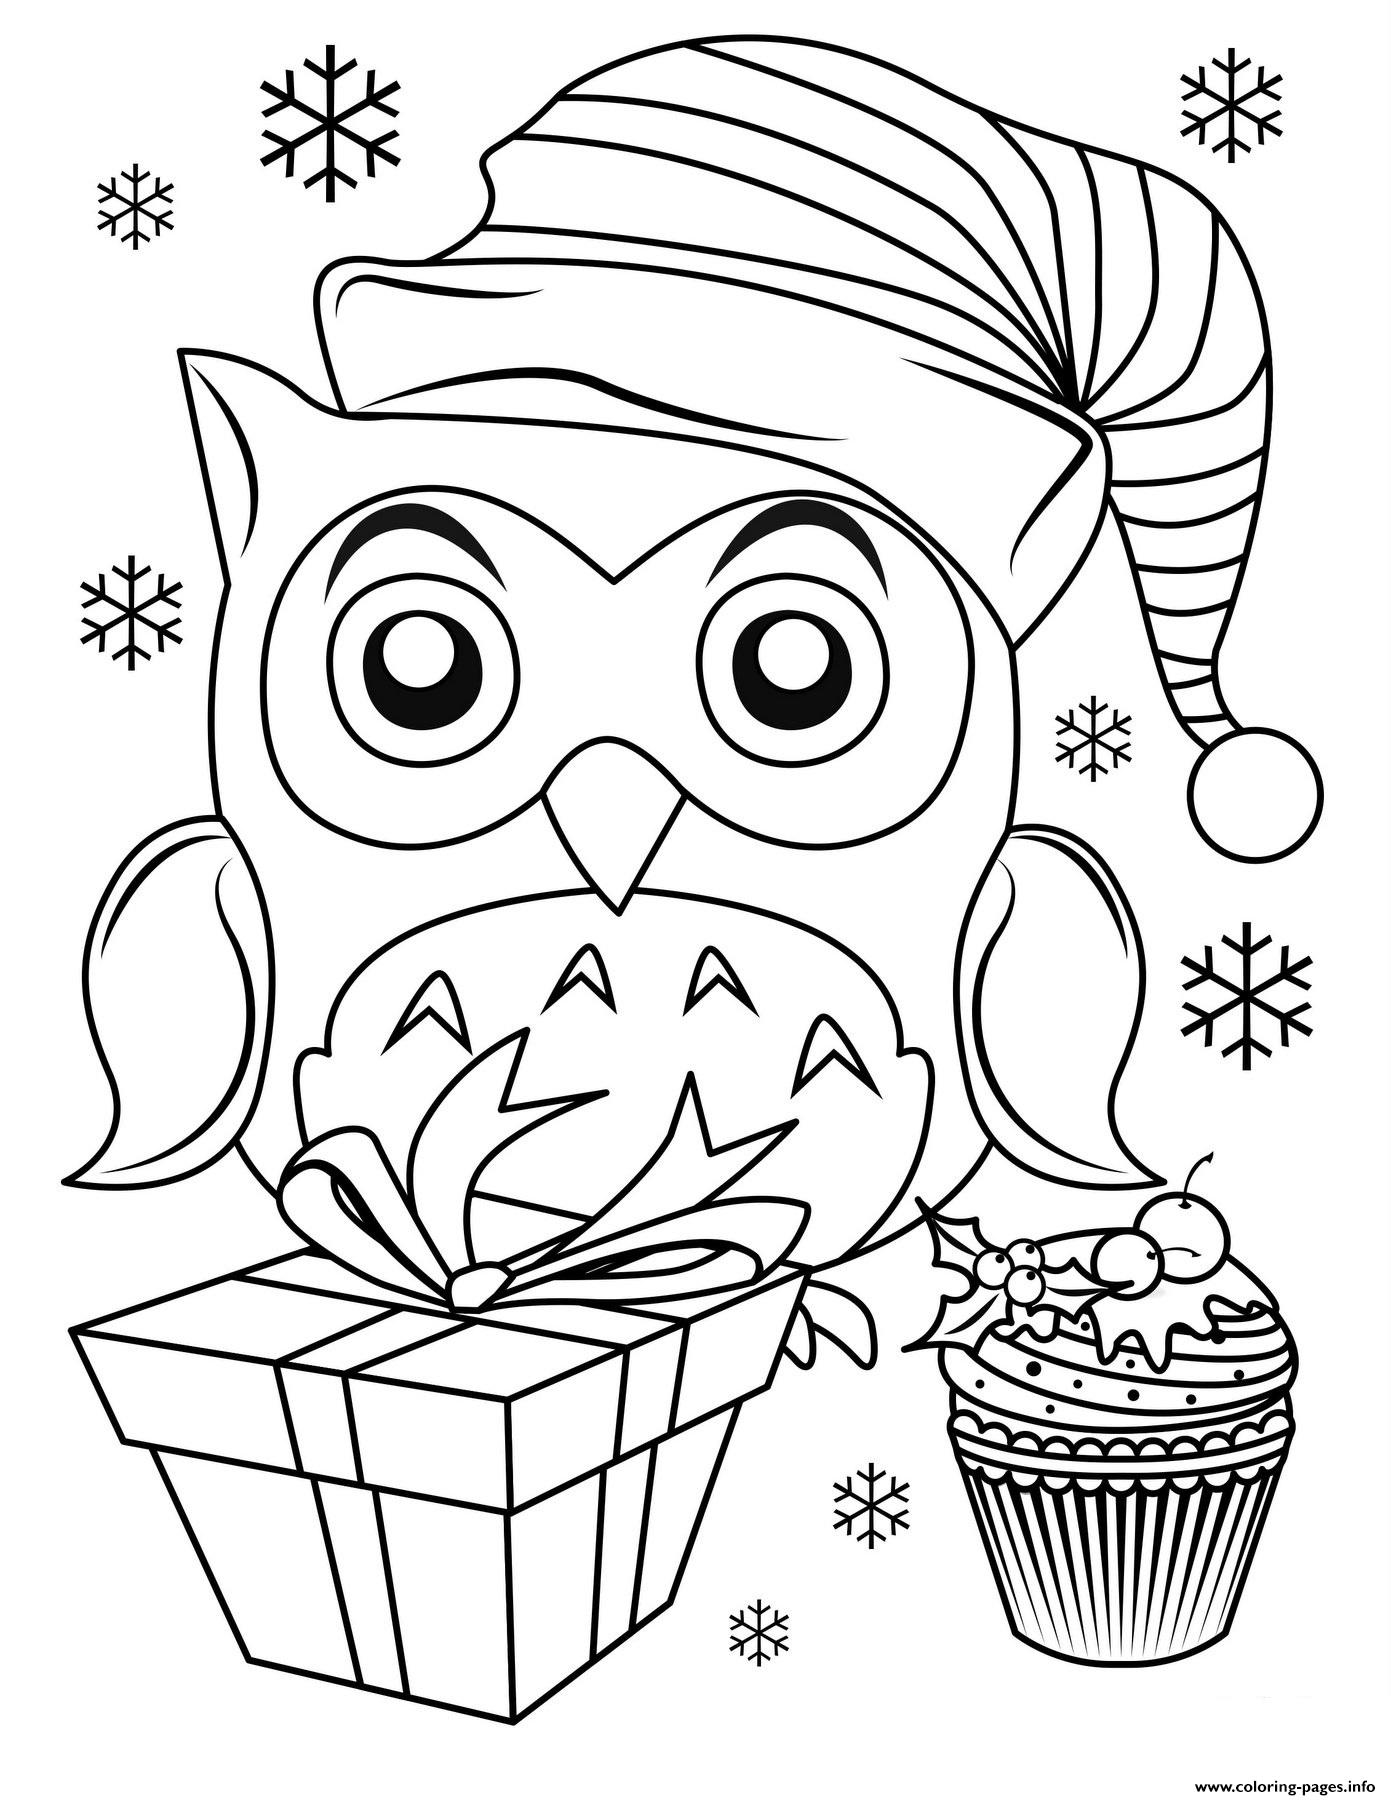 holiday coloring pictures free disney christmas printable coloring pages for kids pictures holiday coloring